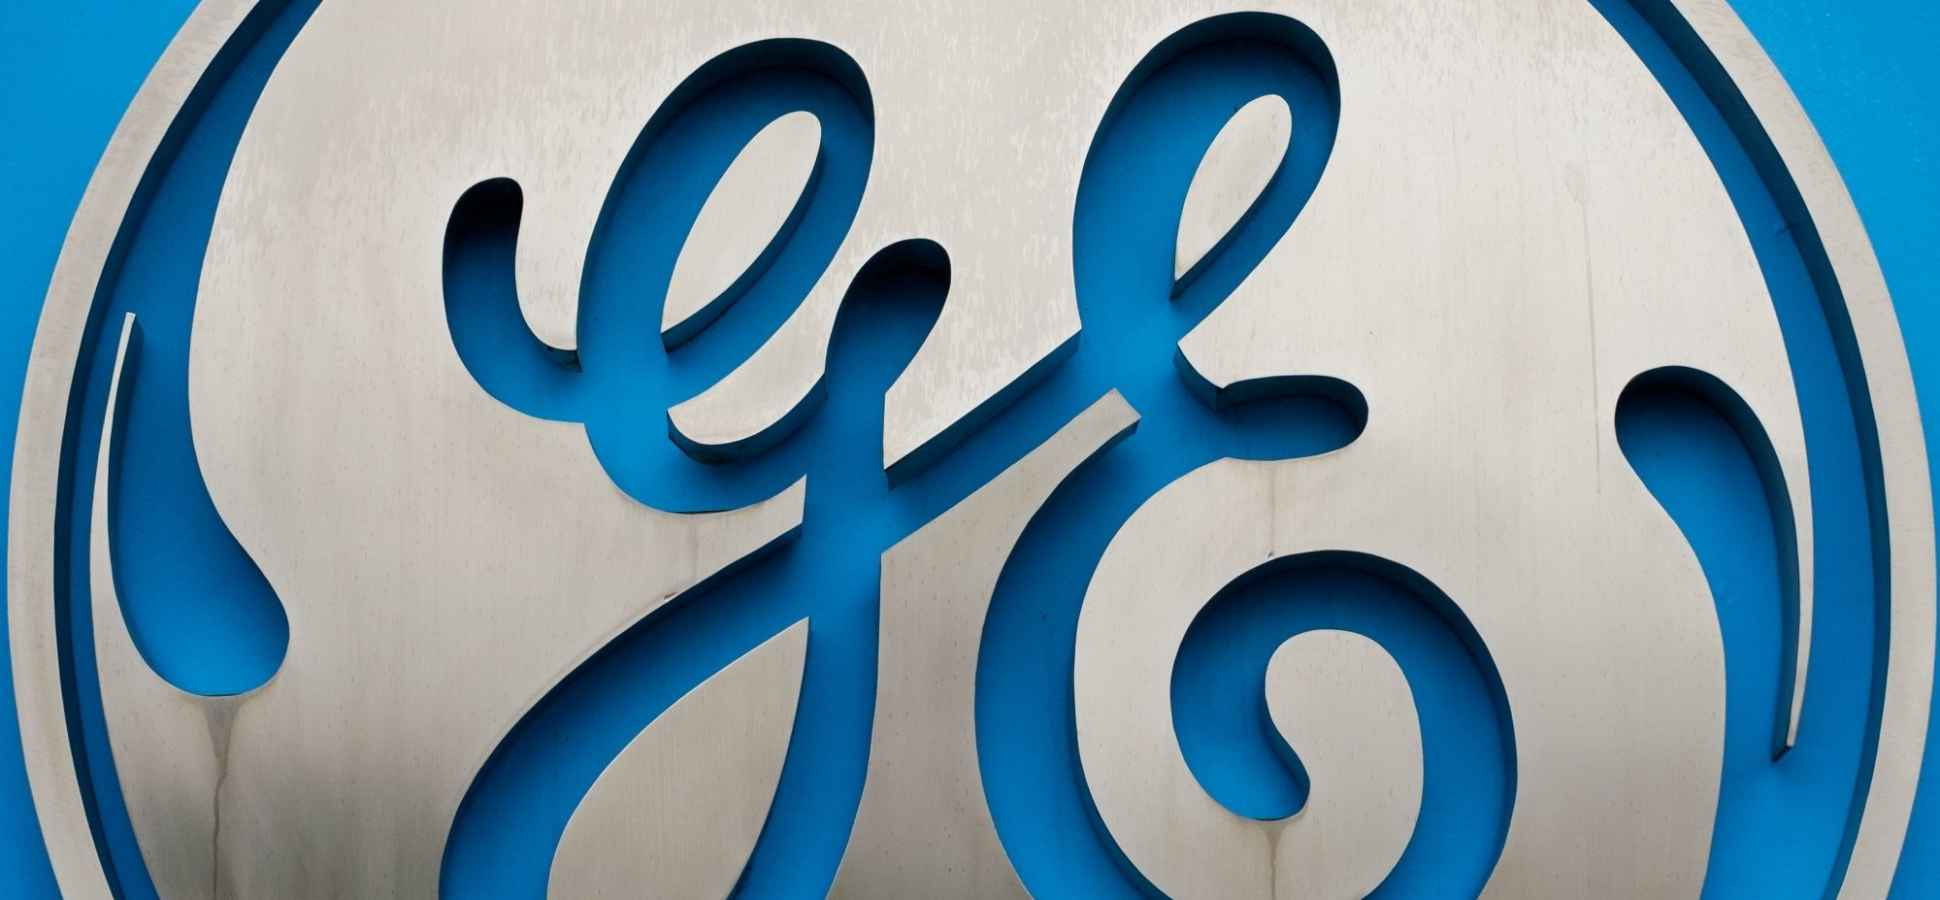 General Electric Acquires 3D Printing Firms for $1.4 Billion